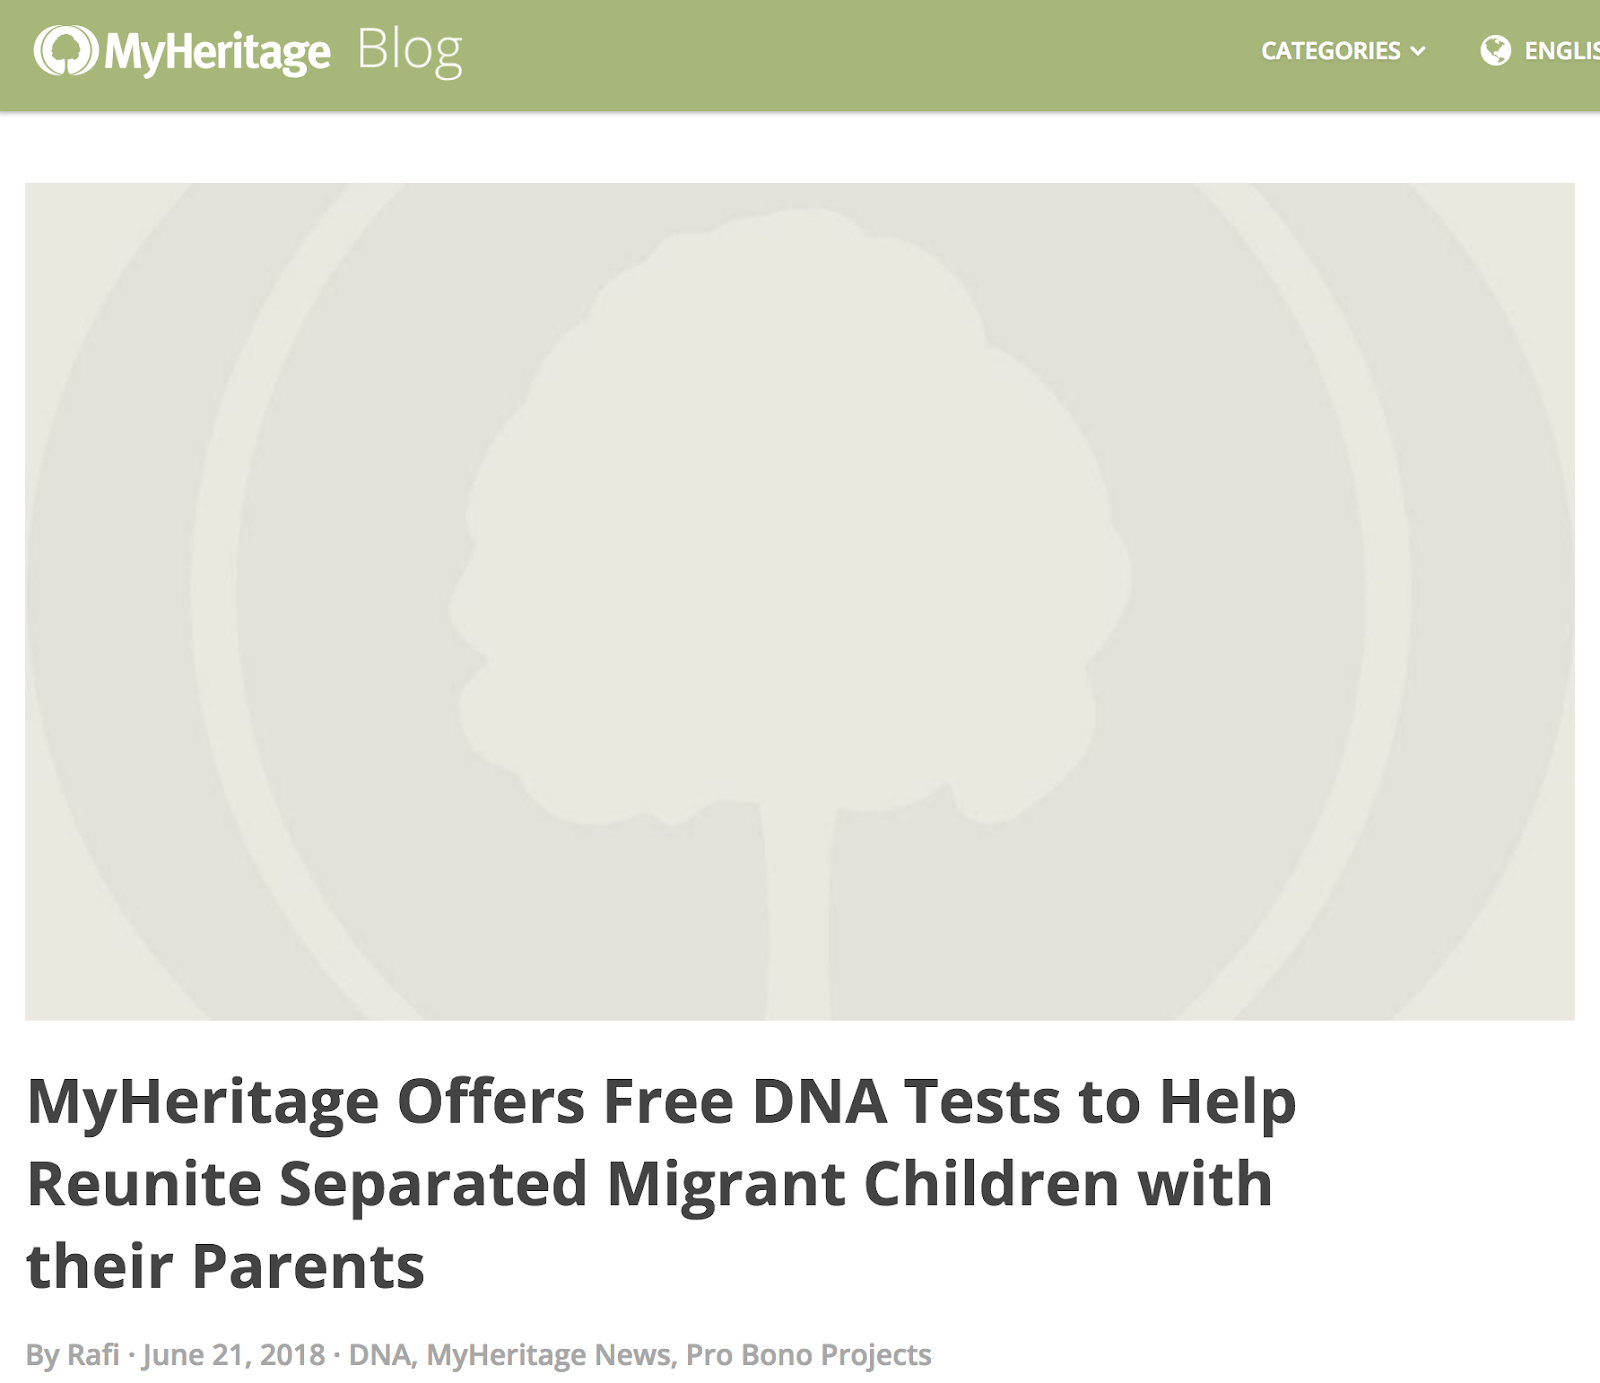 myheritage offers free dna tests to help reunite separated migrant children with their parents